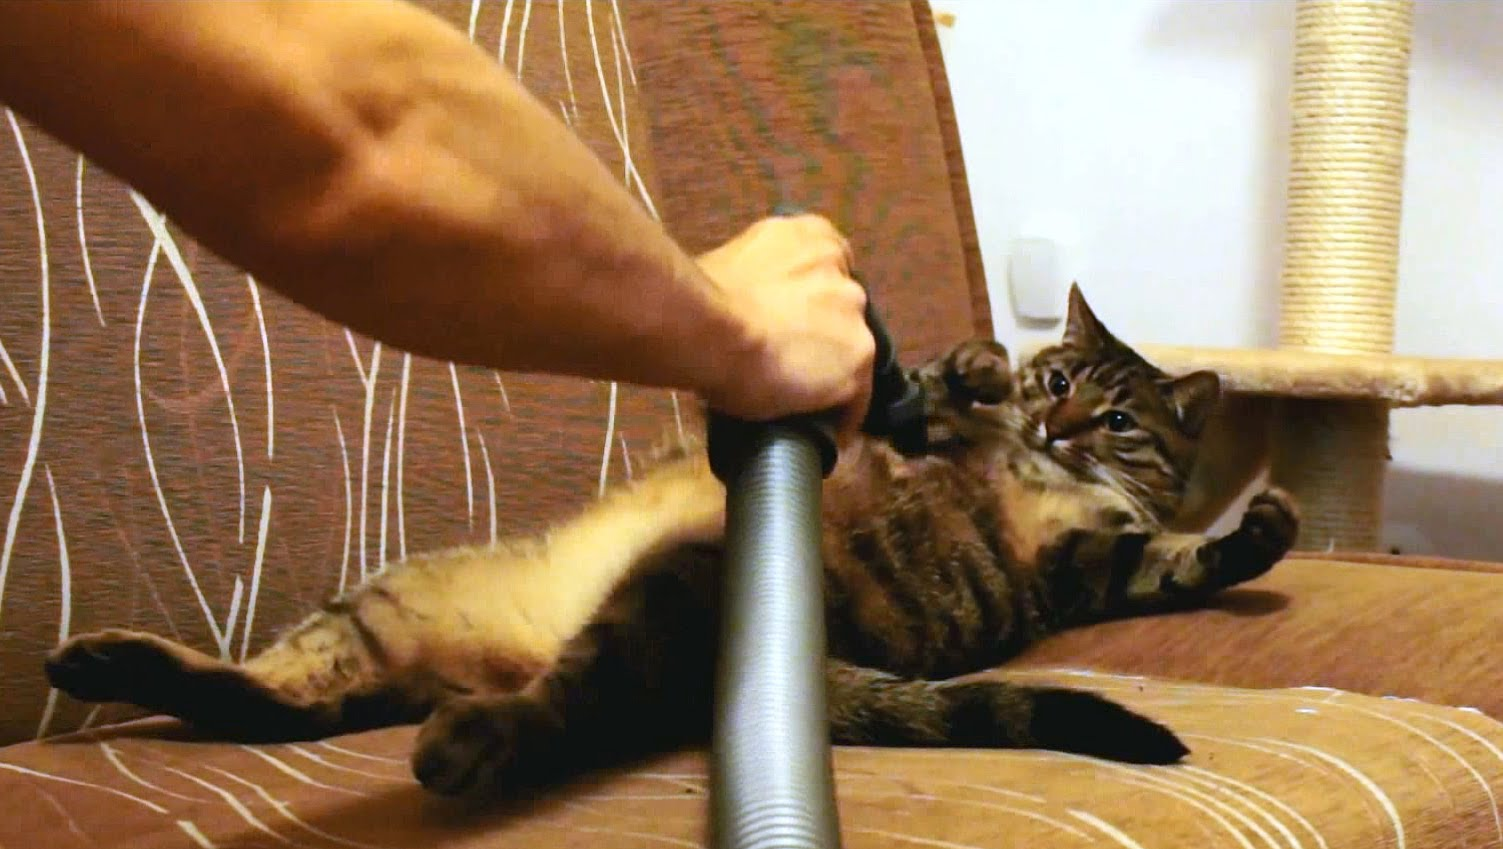 This kitty loves to be vacuumed